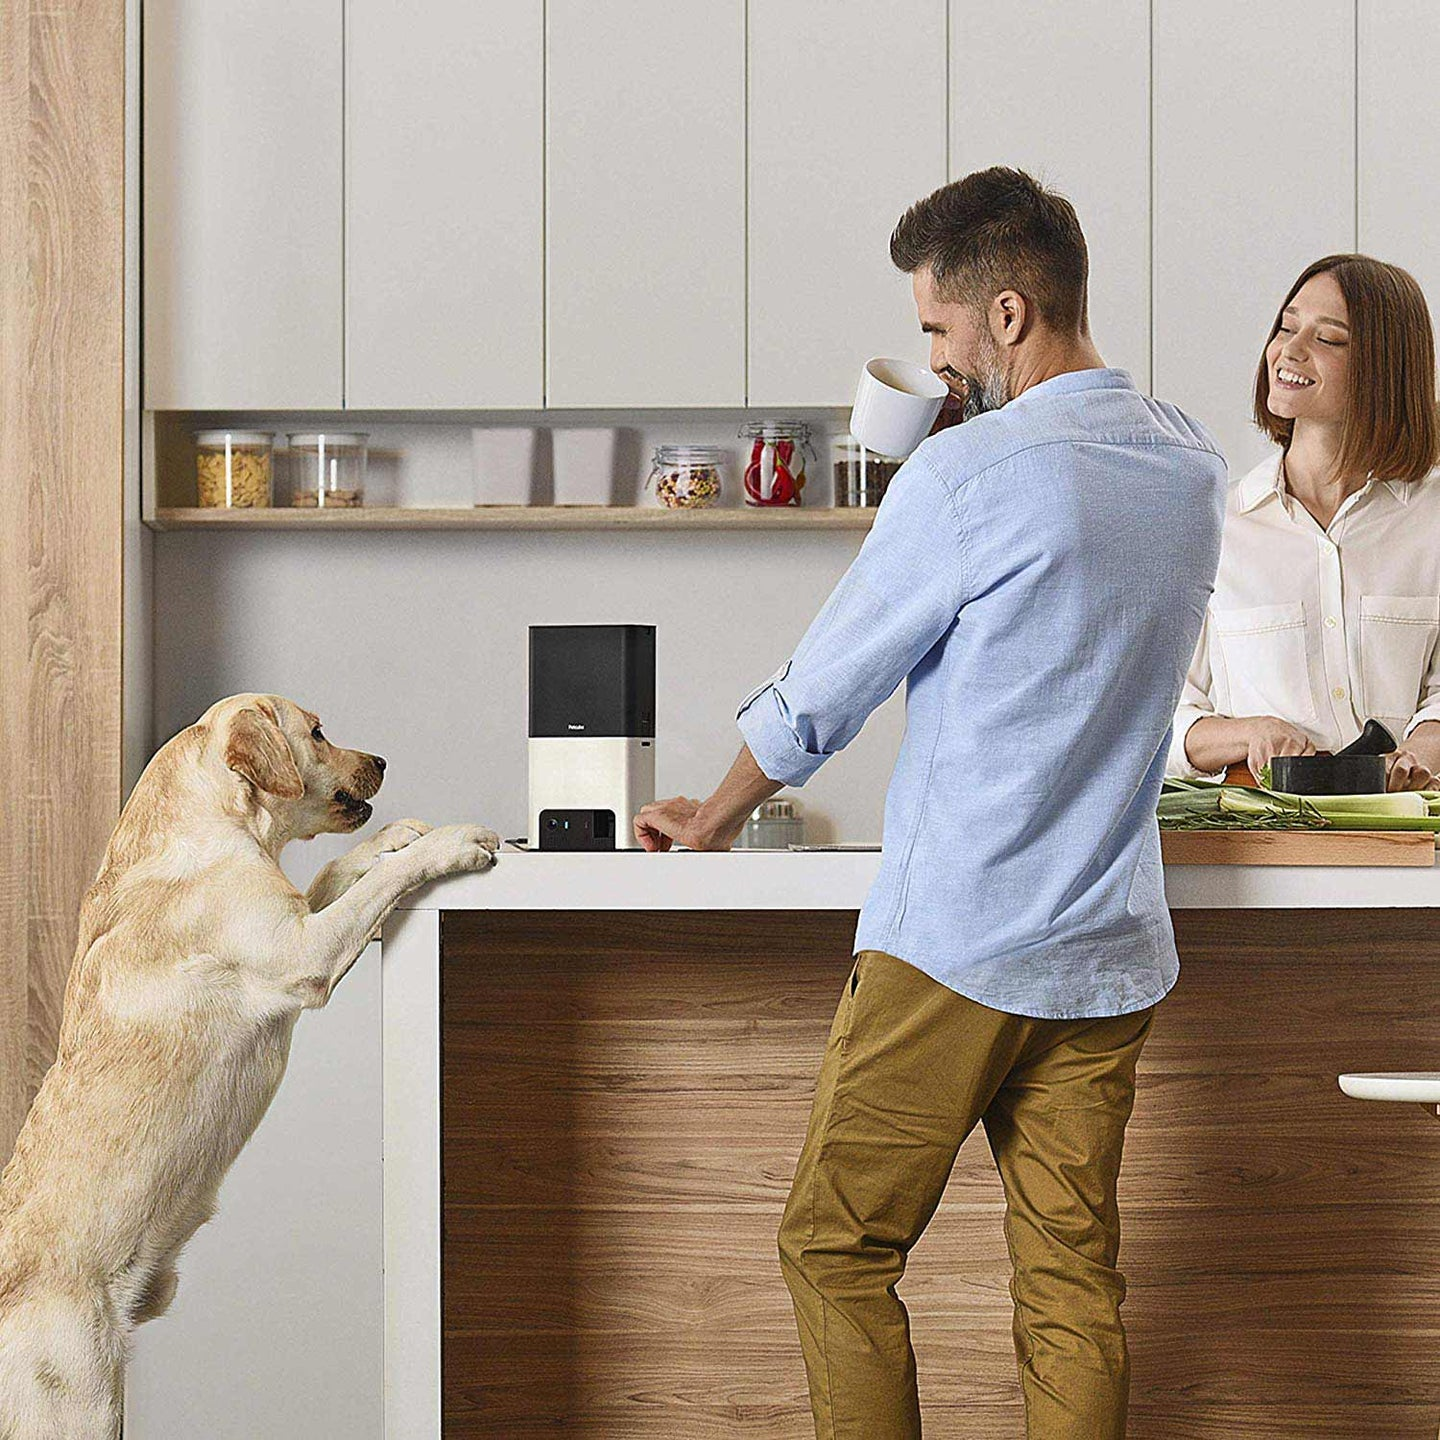 Couple in a kitchen giving their dog treats